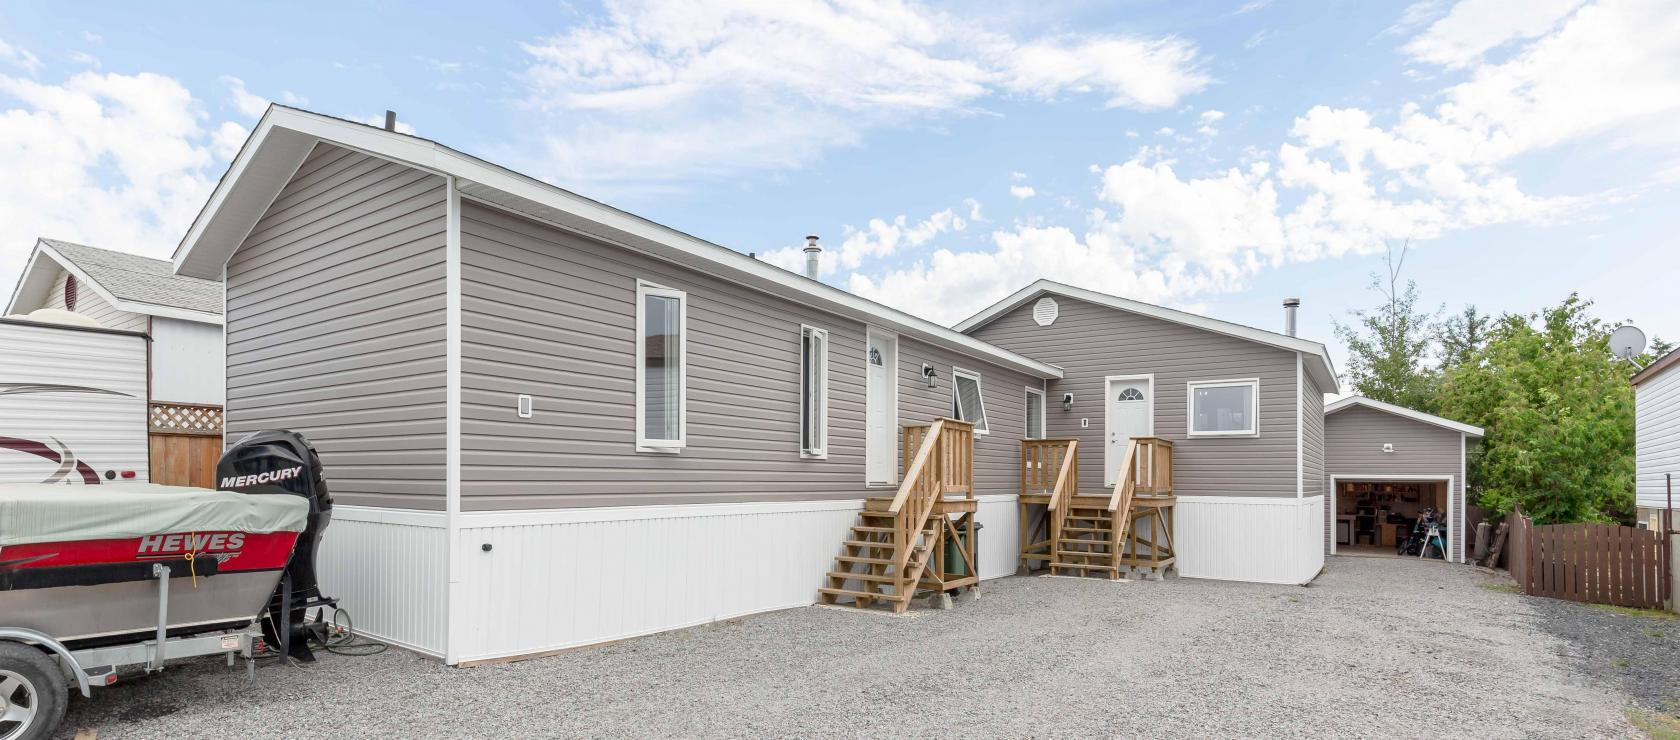 151 Borden Drive, Yellowknife 2